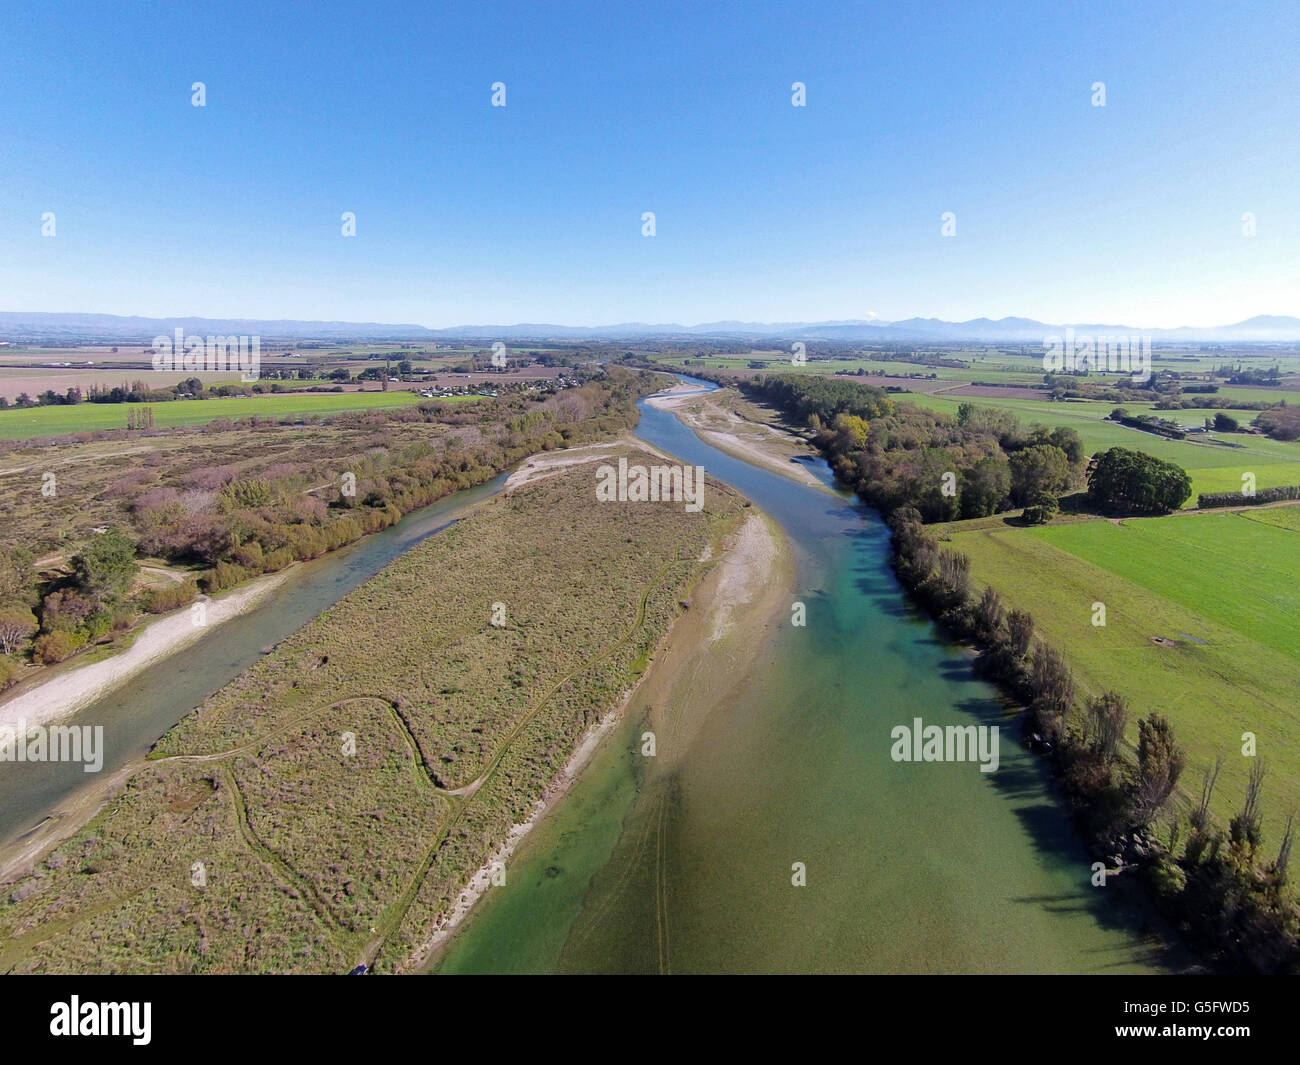 Opihi River near Temuka, South Canterbury, South Island, New Zealand - drone aerial - Stock Image